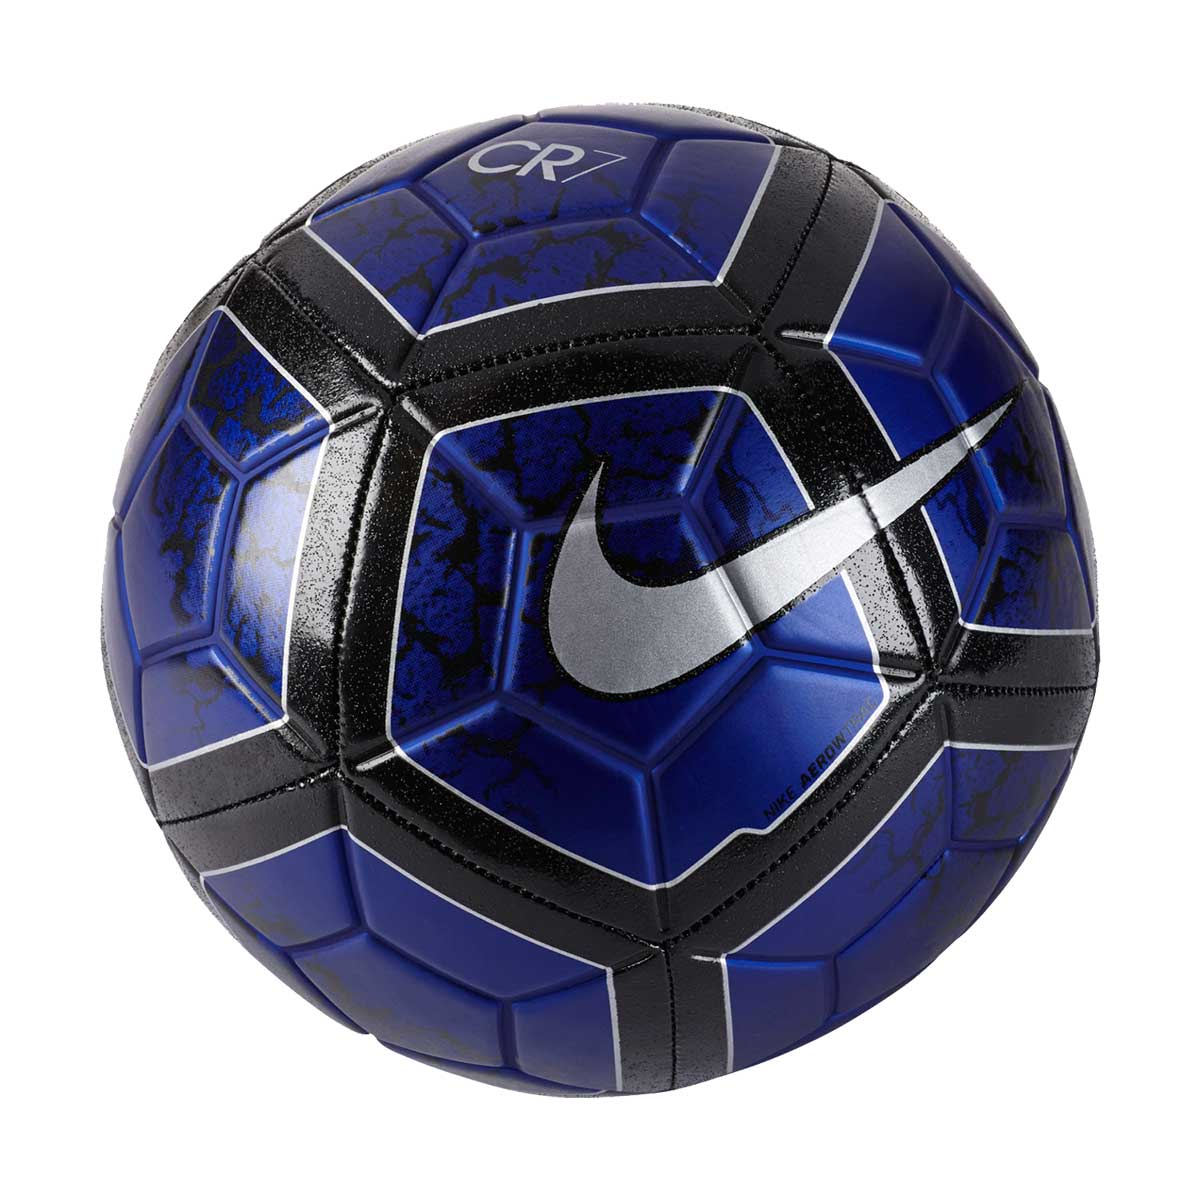 6b387be92af Buy Nike CR7 Prestige Football (Deep Royal Black) Online